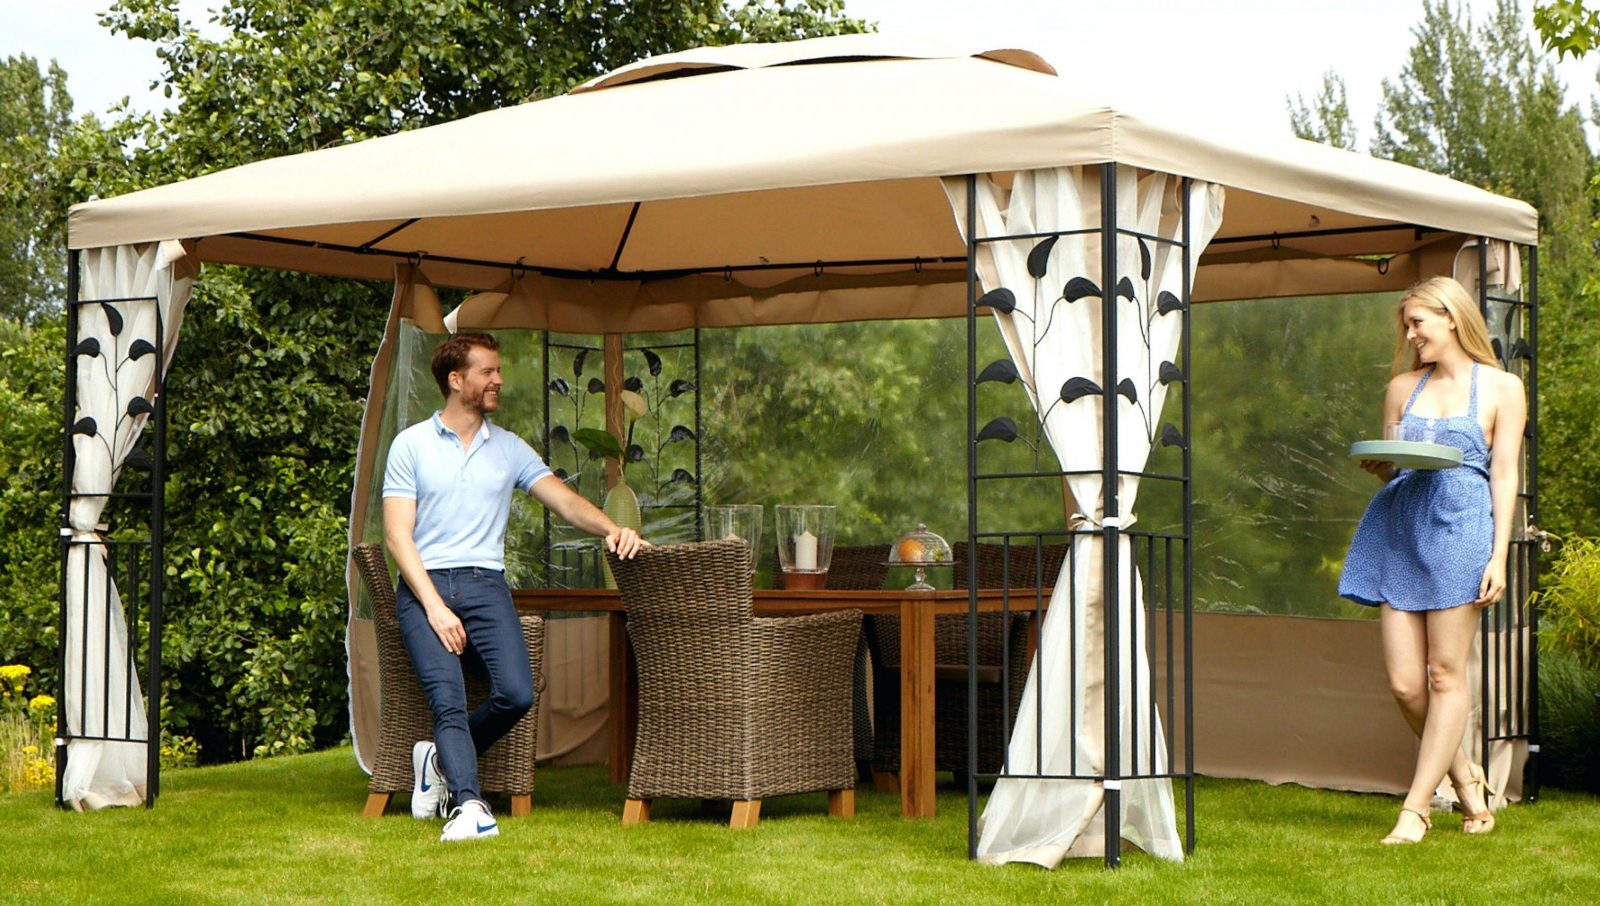 Gartenpavillon Mit Festem Dach Cool Pavillon Bltter In Gren von Pavillon Metall Festes Dach Photo